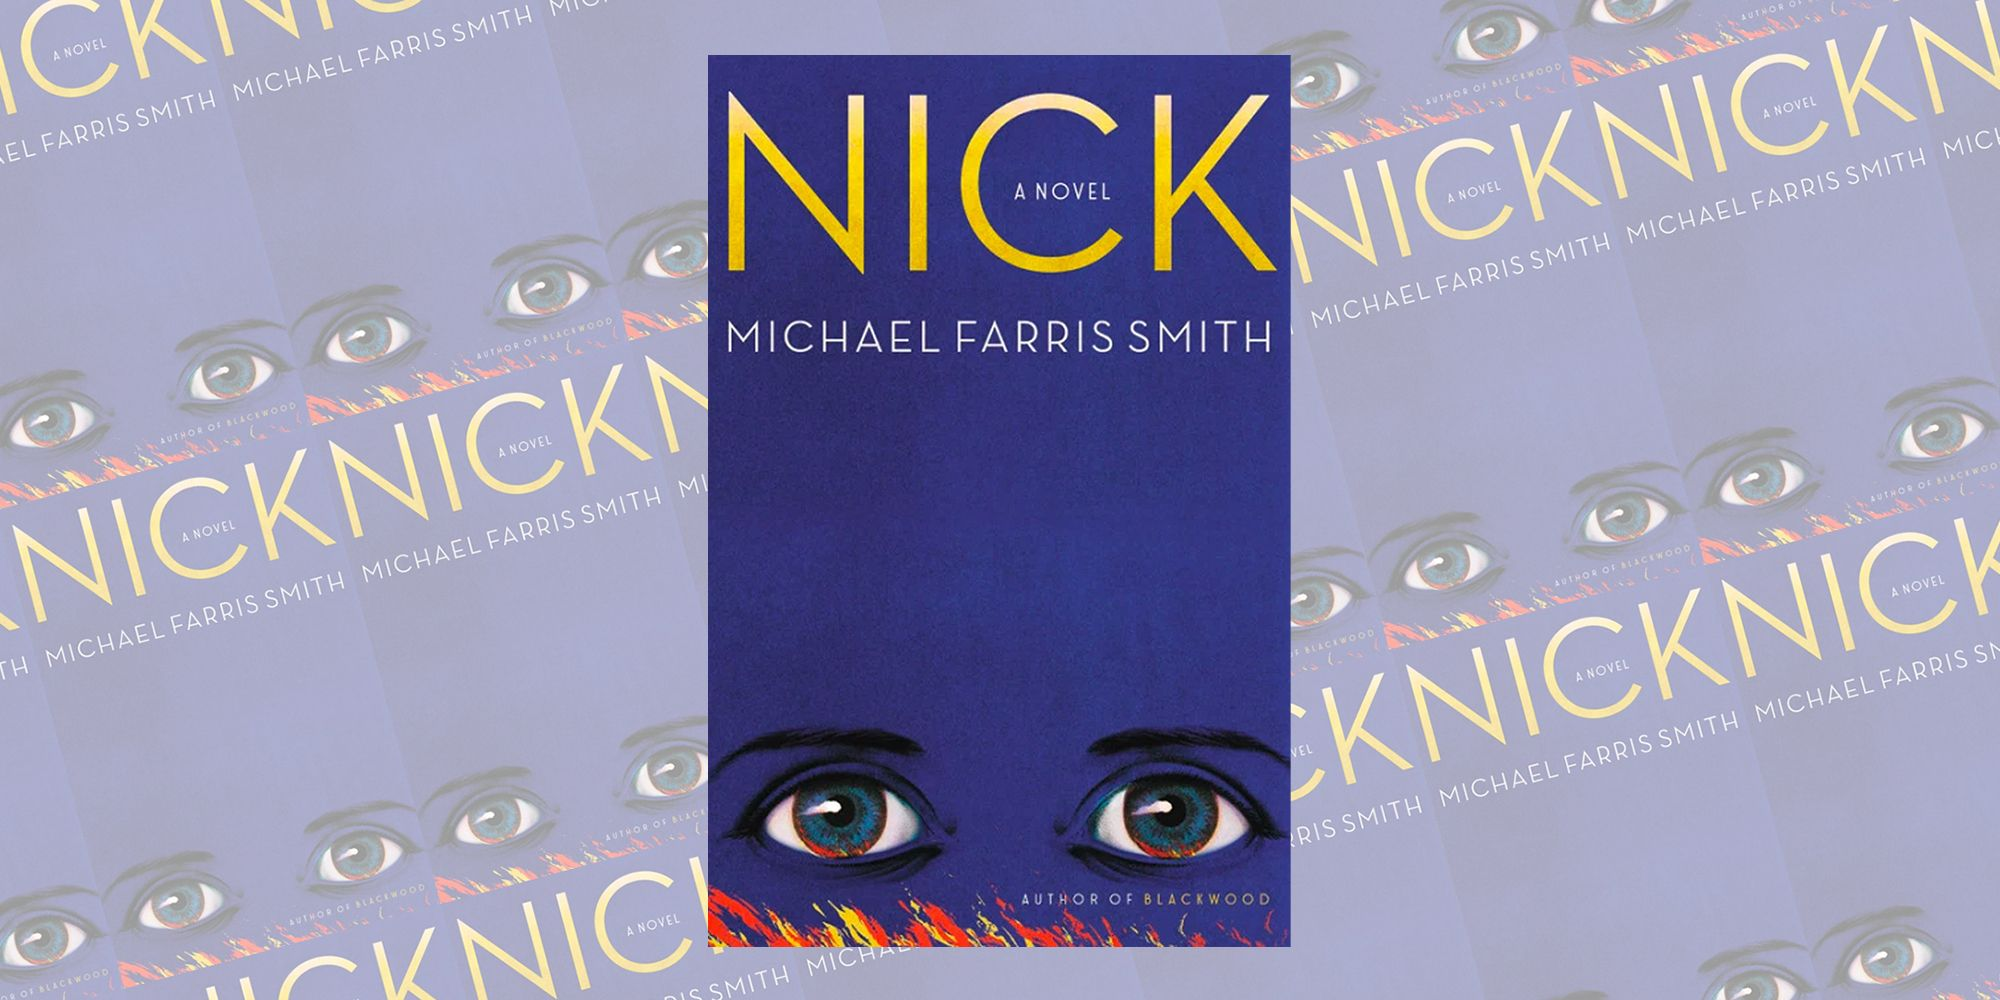 Nick' by Michael Farris Smith, Prequel to 'The Great Gatsby' Is Set to  Publish Next Year